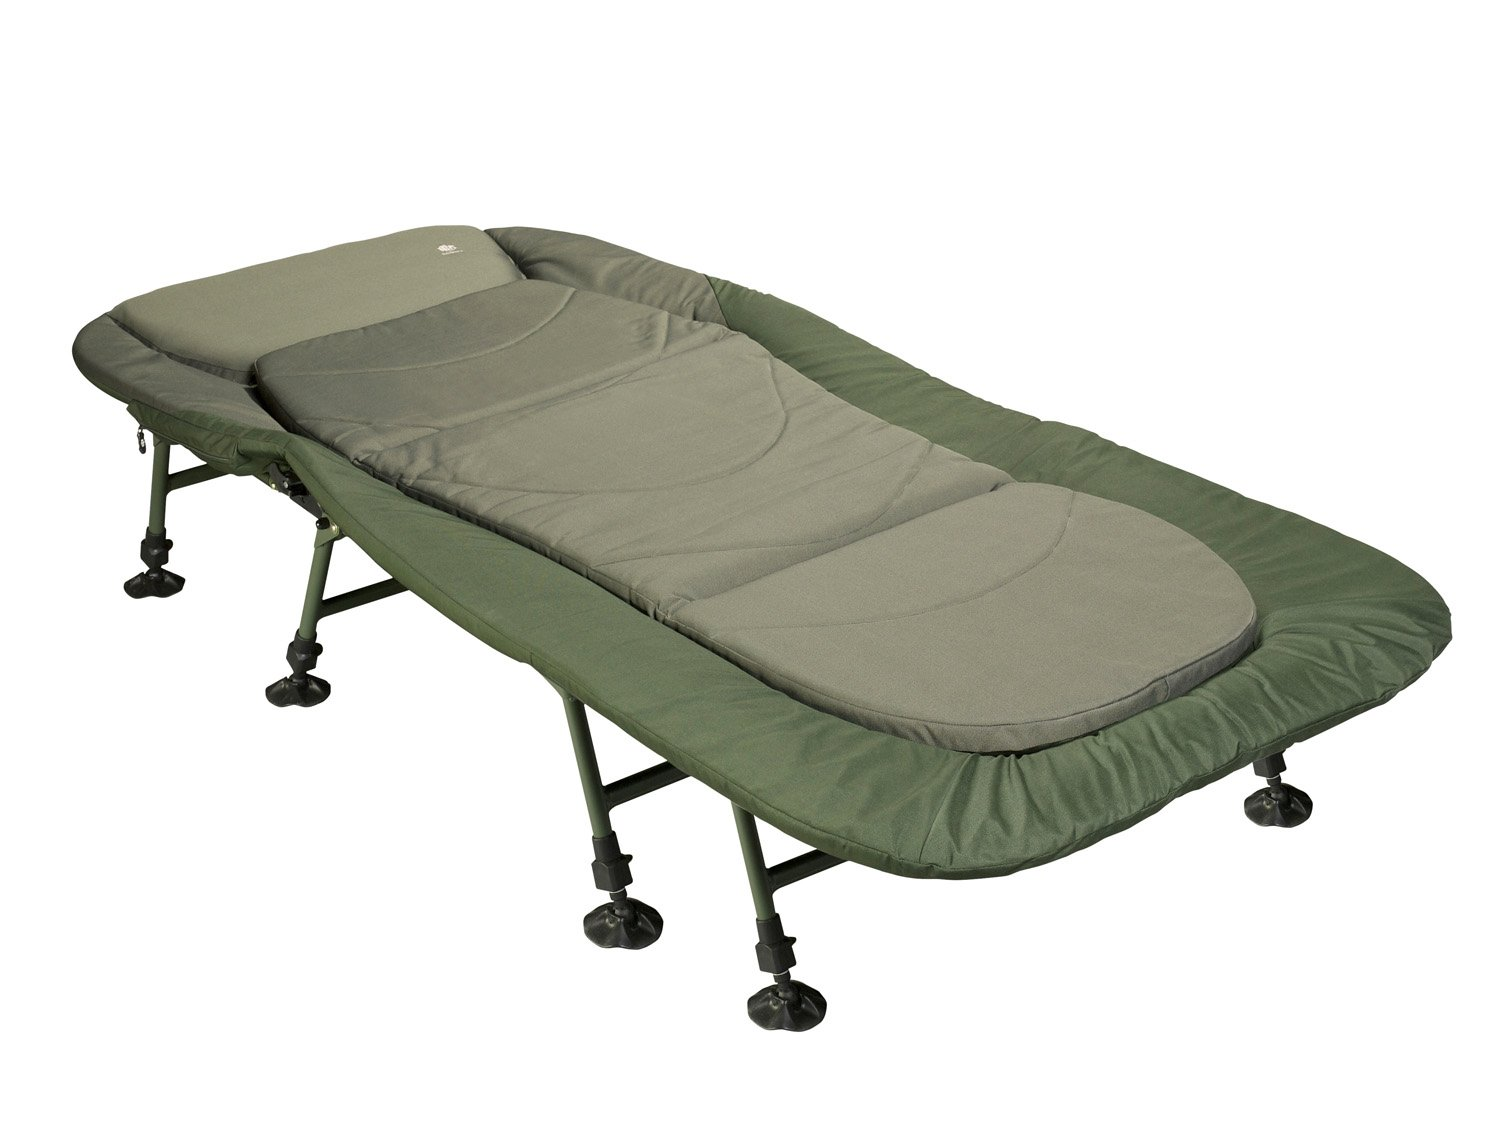 Phenomenal Jrc Extreme 4 Leg Bed Chair Green Tackle Search Pabps2019 Chair Design Images Pabps2019Com